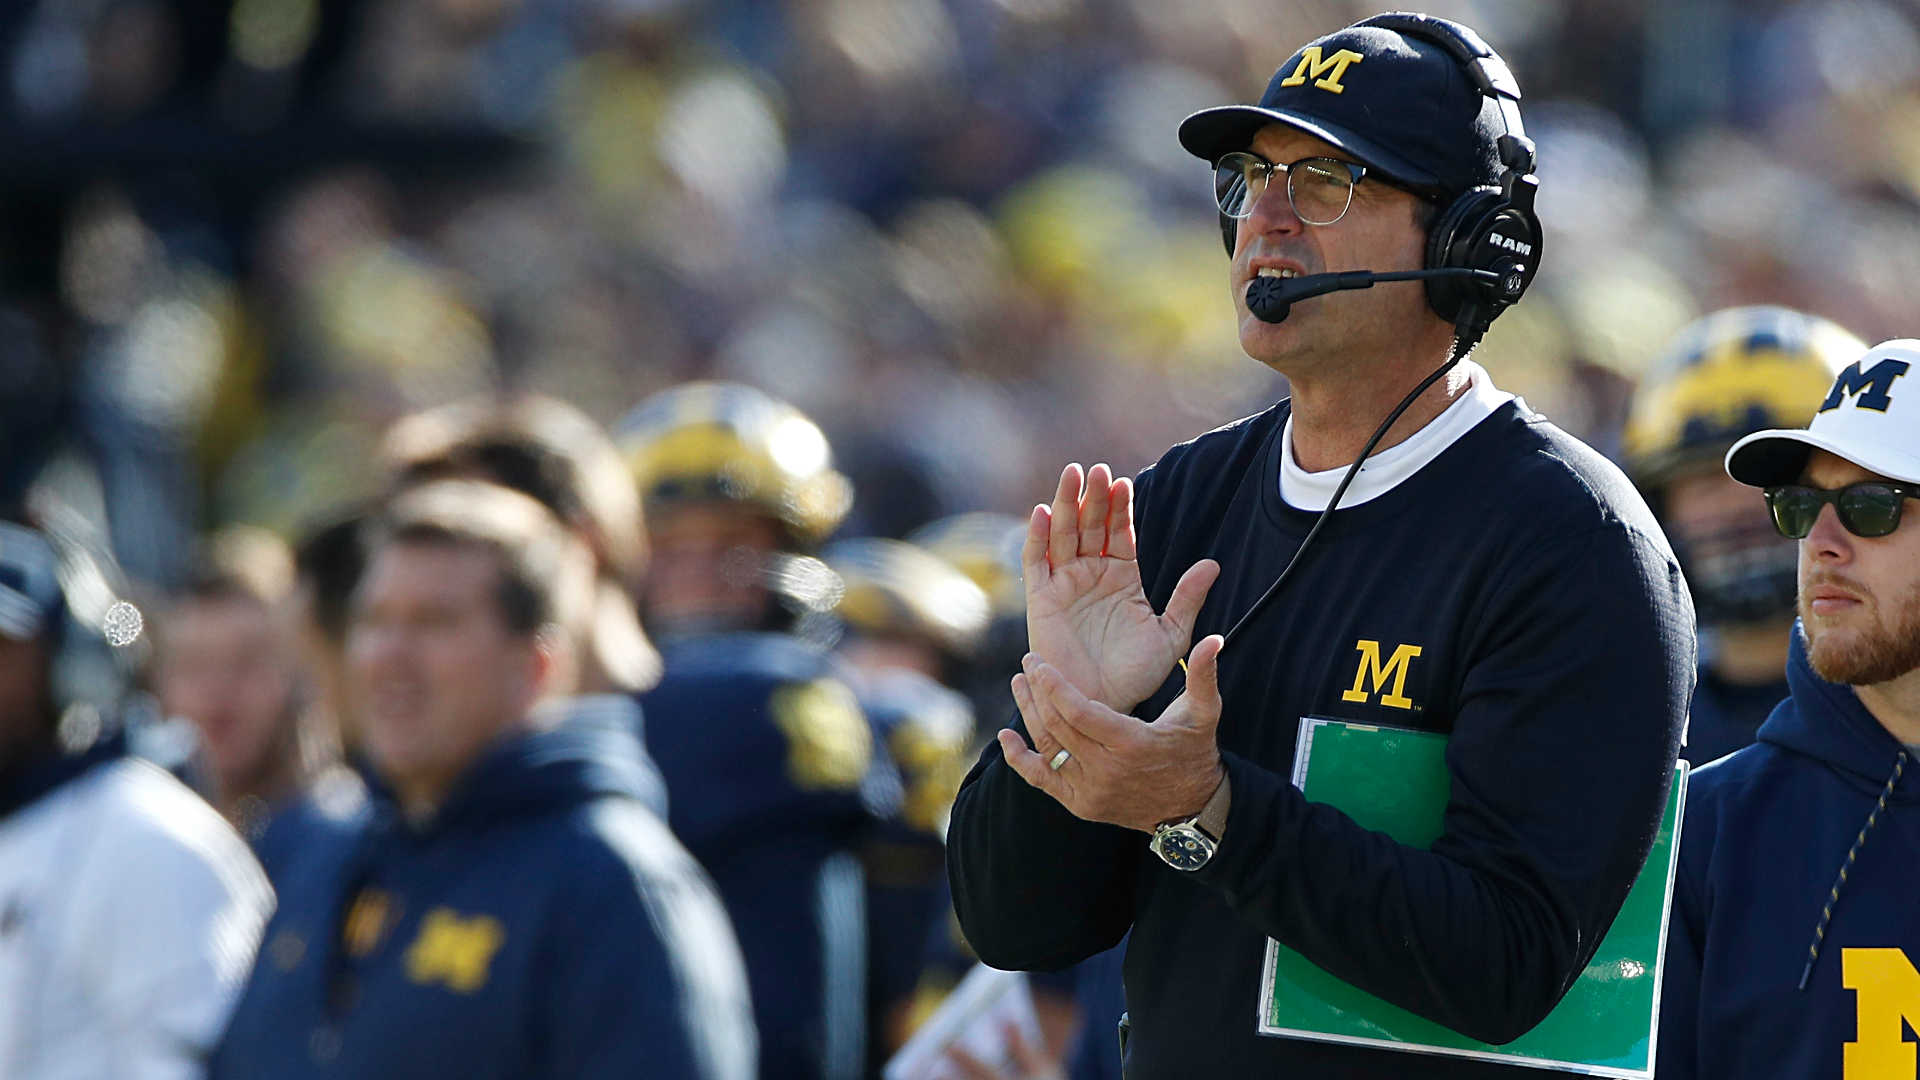 Jim-harbaugh-032217-getty-ftrjpg_url2g07a5kzn10eh13mgkgkdx